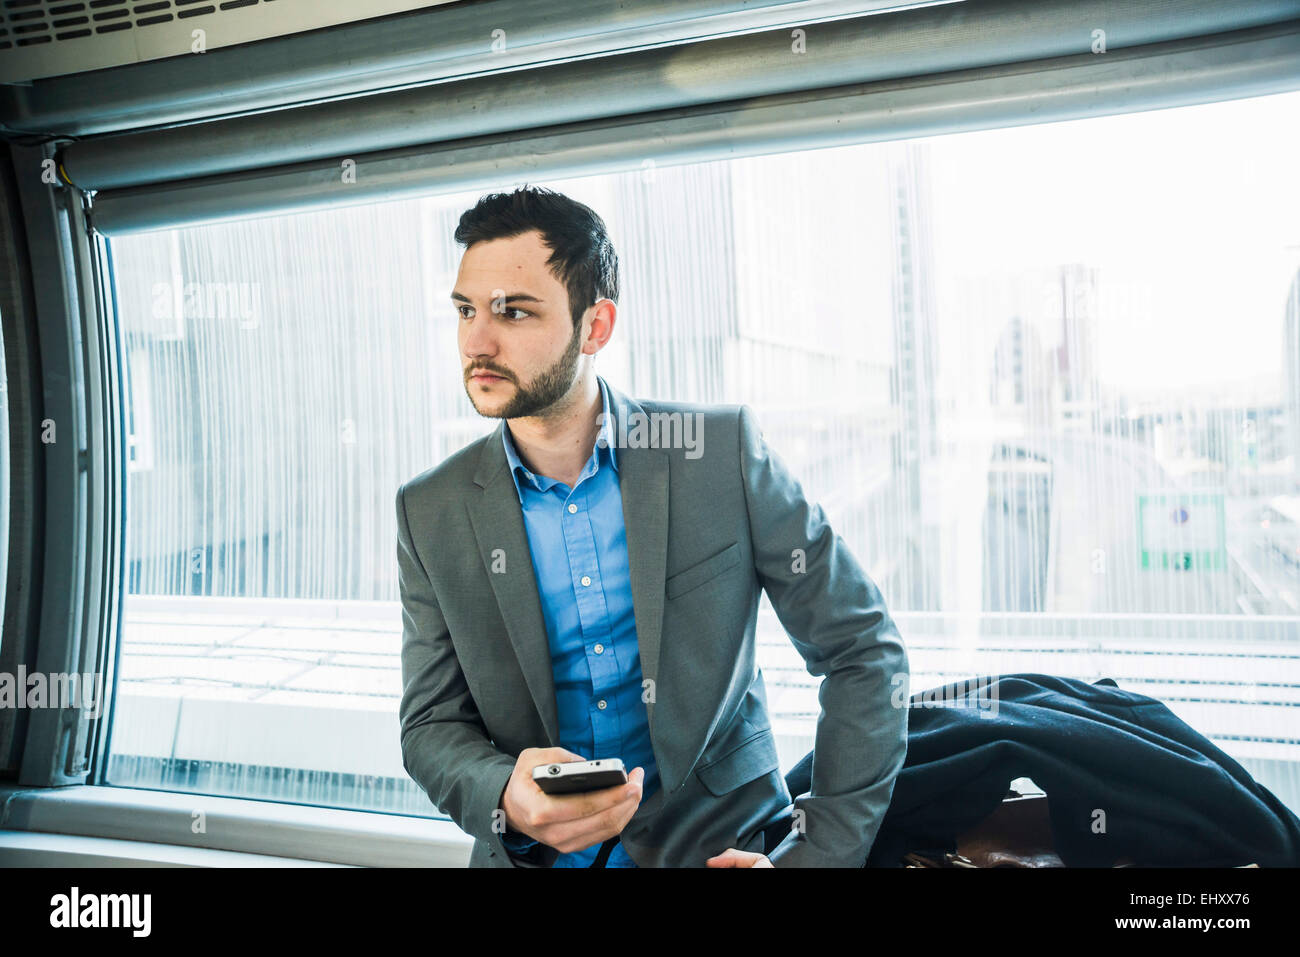 Young businessman with cell phone in underground train - Stock Image